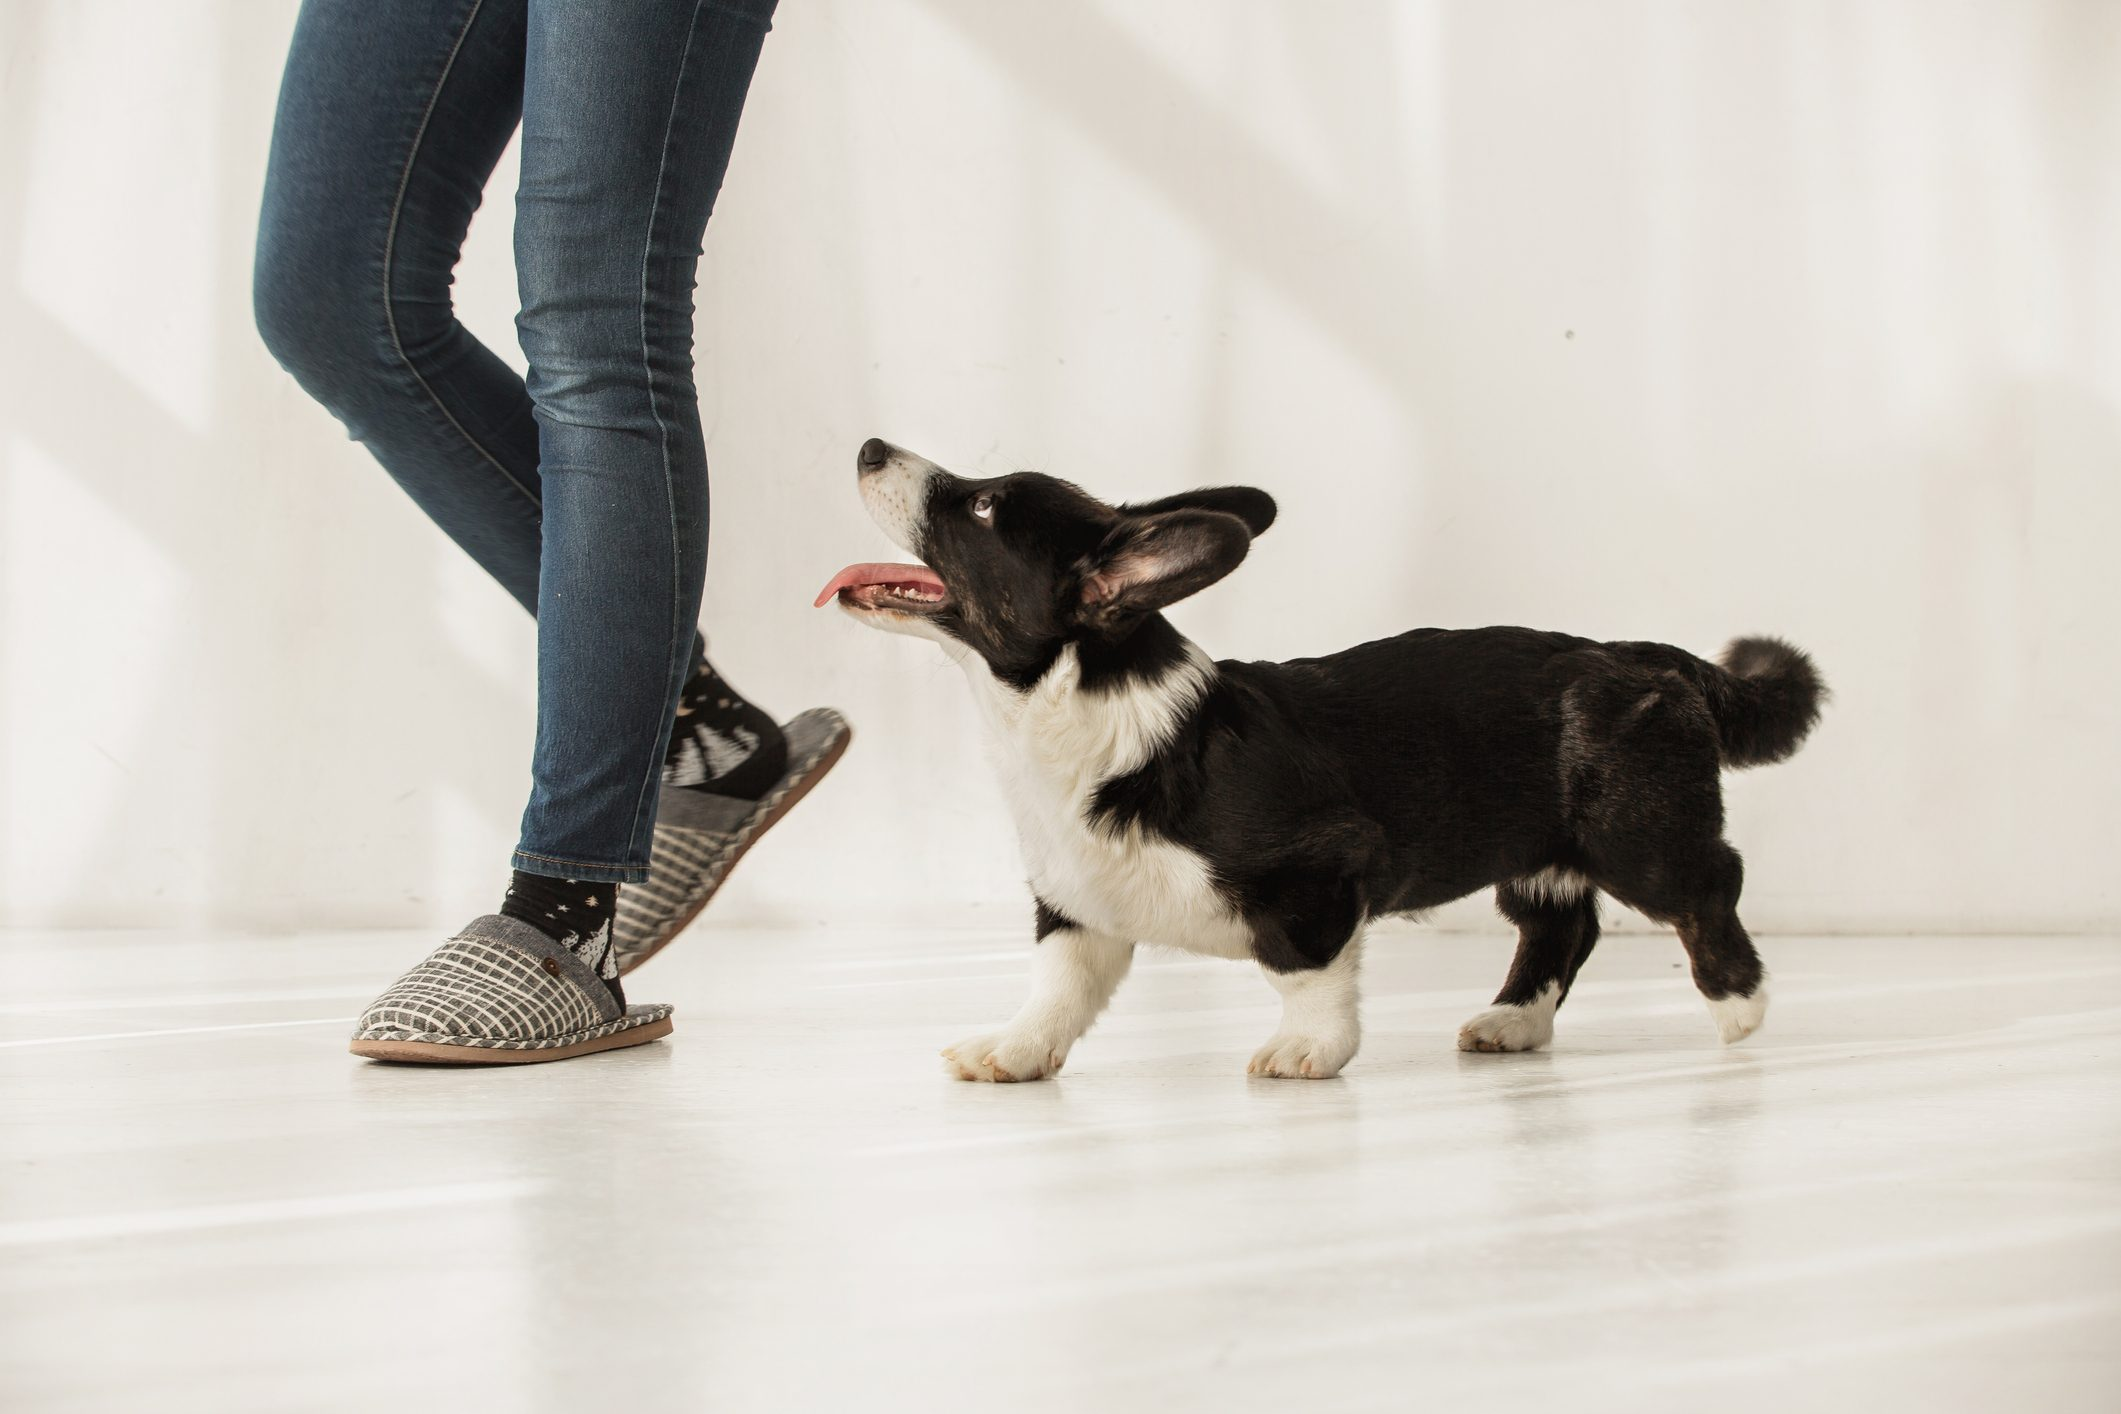 Black and white corgi following woman's legs indoors